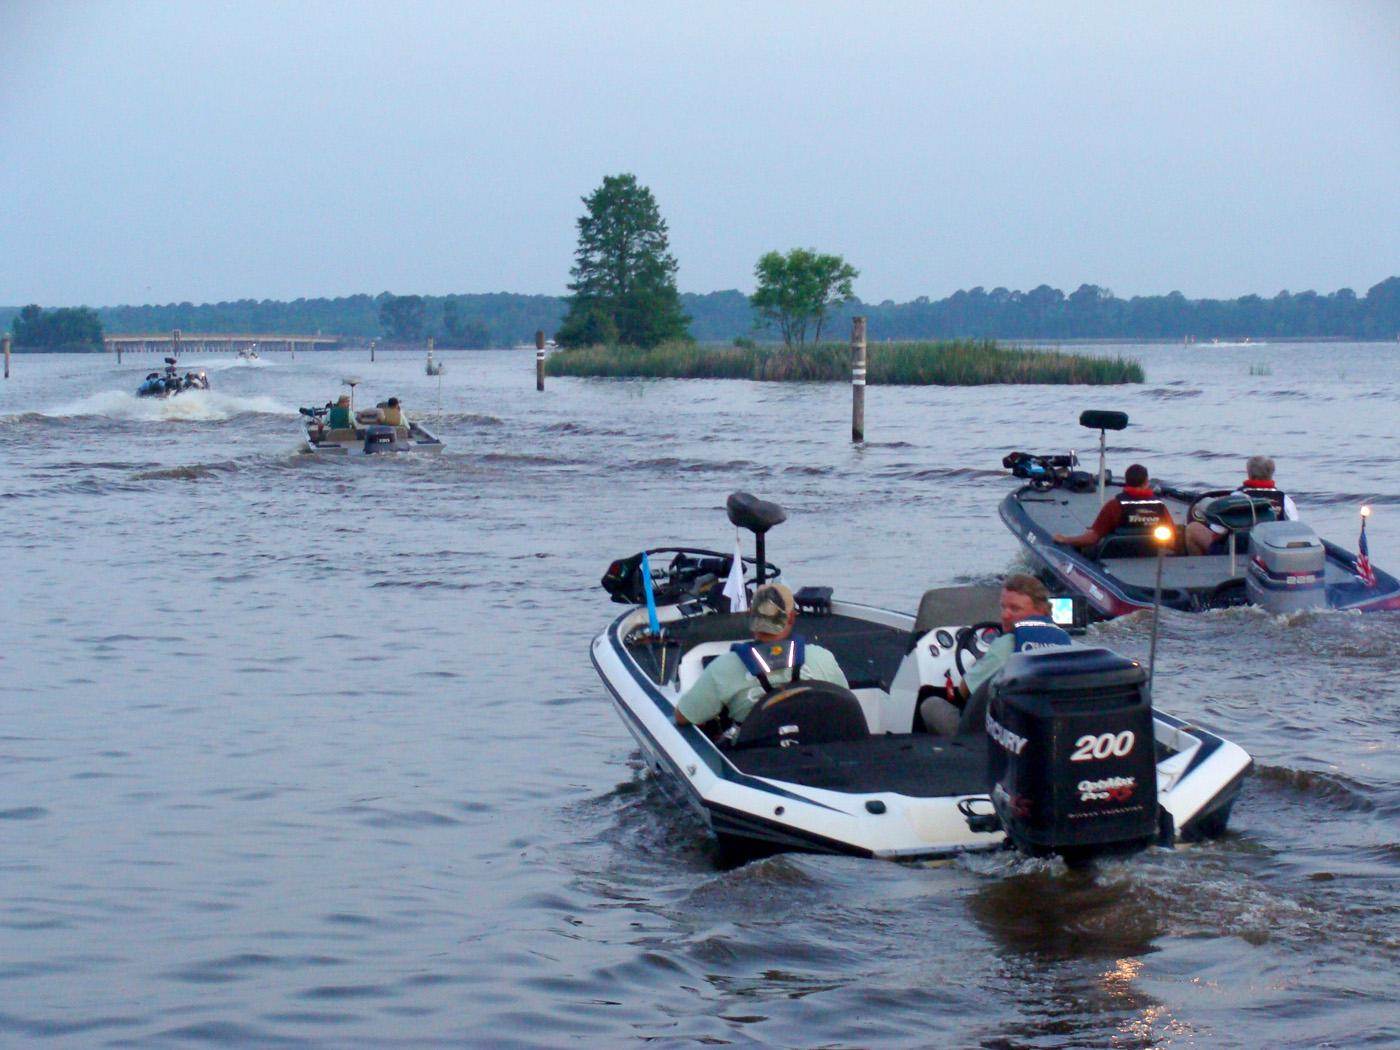 On May 6, nearly 400 anglers in 189 boats launched on the Ross Barnett Reservoir to begin the annual Catch-A-Dream Foundation Bass Classic, which raises funds for hunting and fishing experiences for children with life-threatening illnesses. (Submitted Photo)